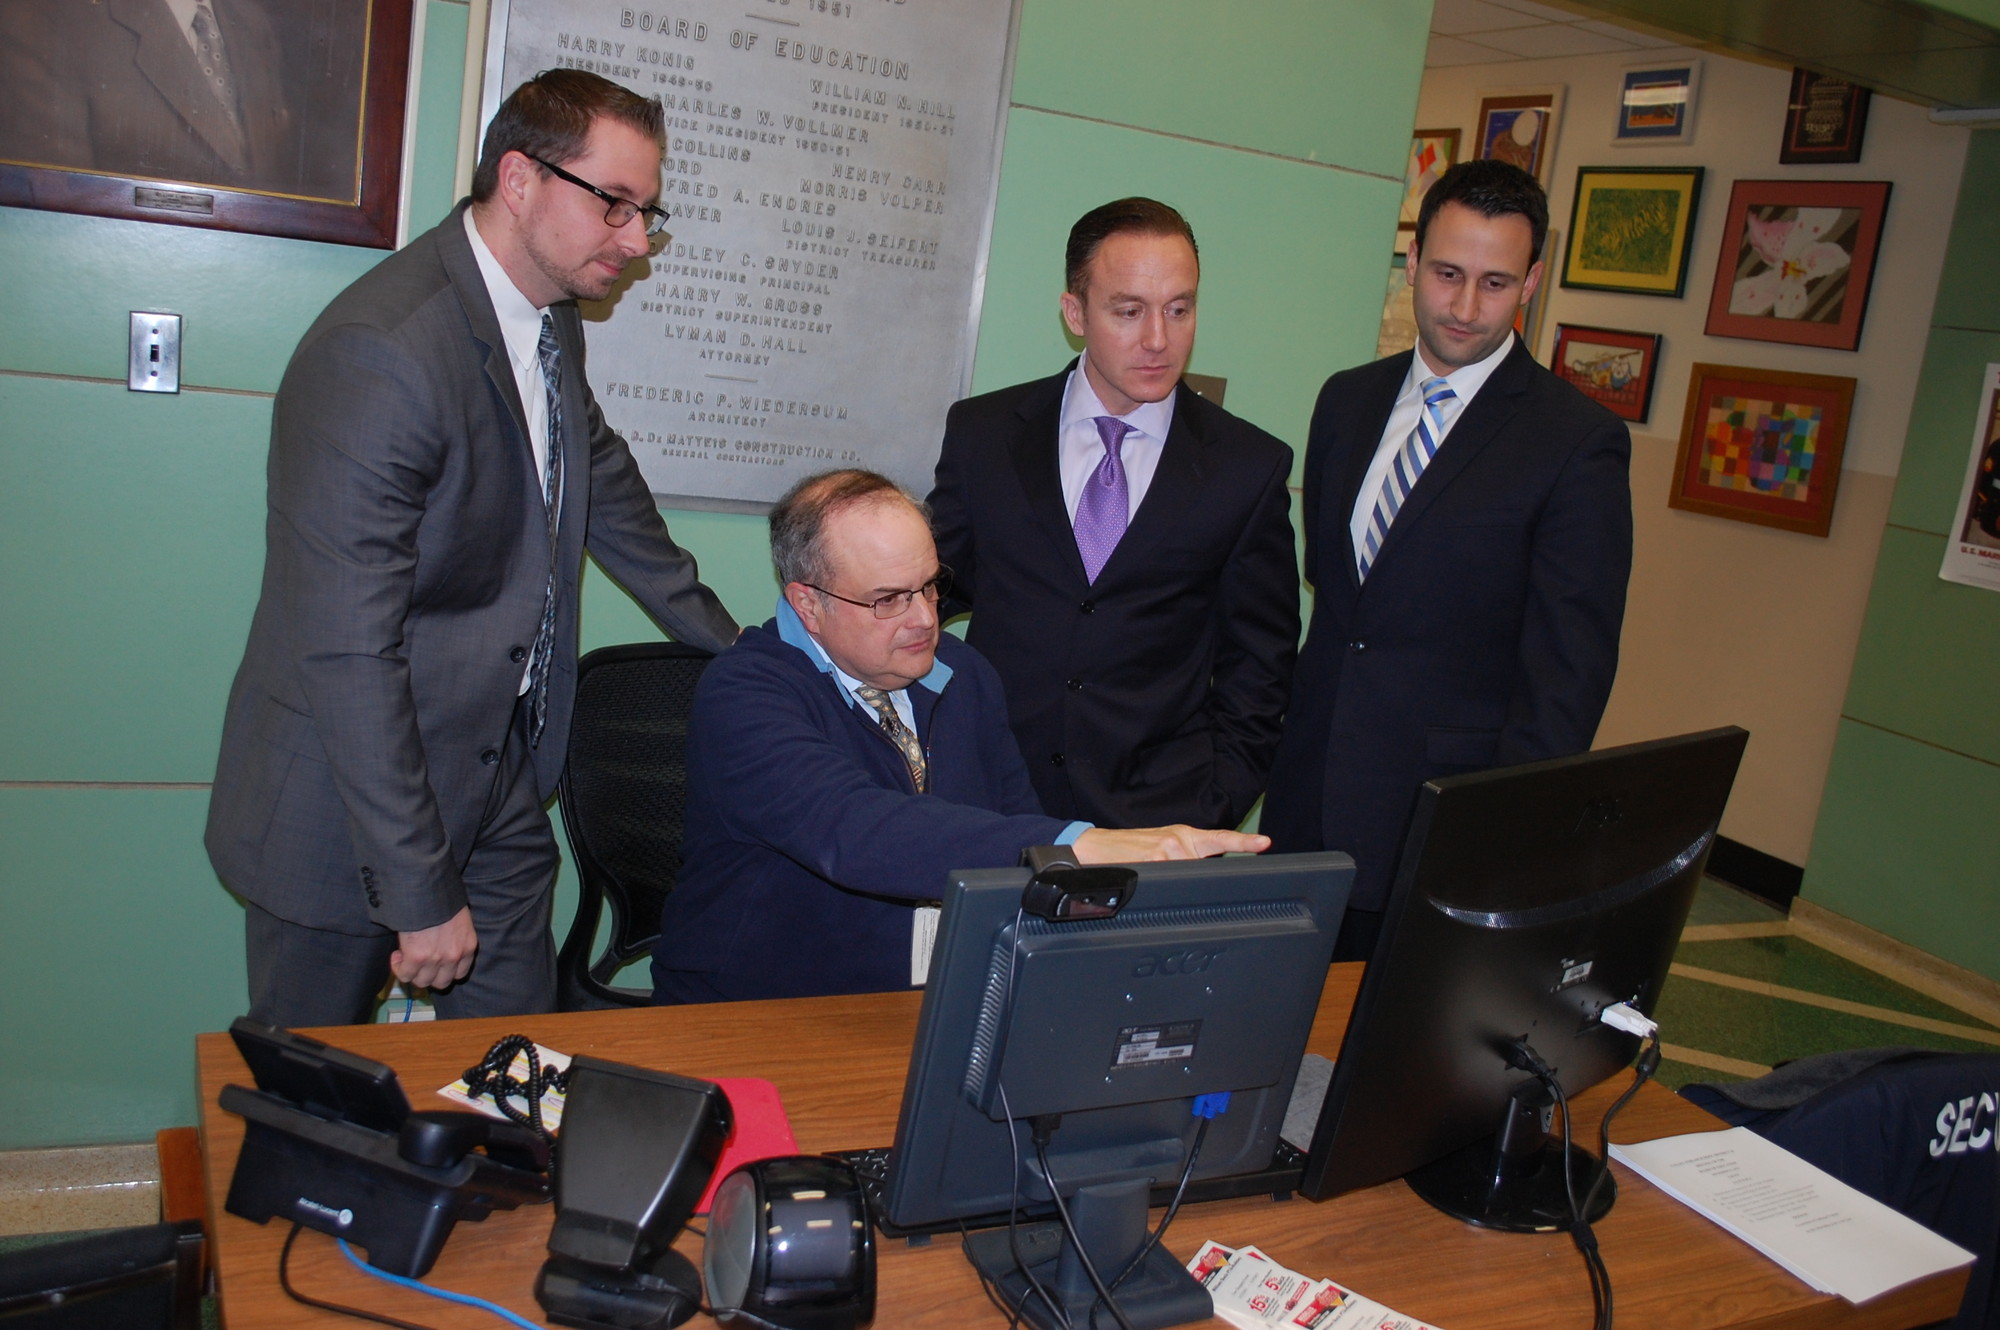 John Venza, one of District 24's security guards, looked over the new monitoring system at the William L. Buck School with principals, standing from left, Mark Onorato, Dr. Scott Comis and Rosario Iacono, before the Dec. 12 board meeting.